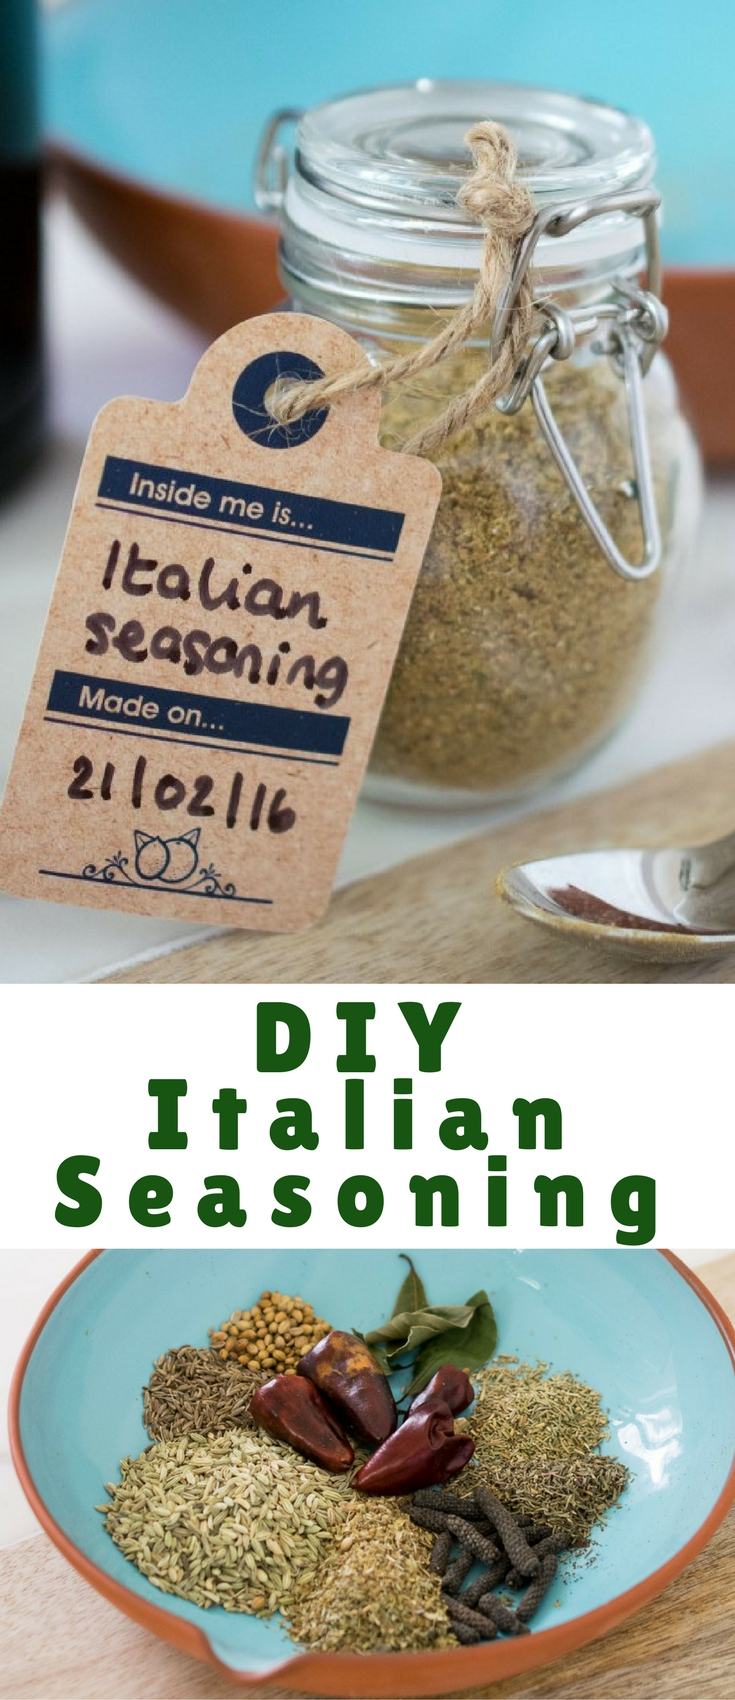 A blend of herbs and spices which together, bring a little Italian flare to your cooking. Try sprinkling it on meat, using a little in your ragu or meatballs and so much more.